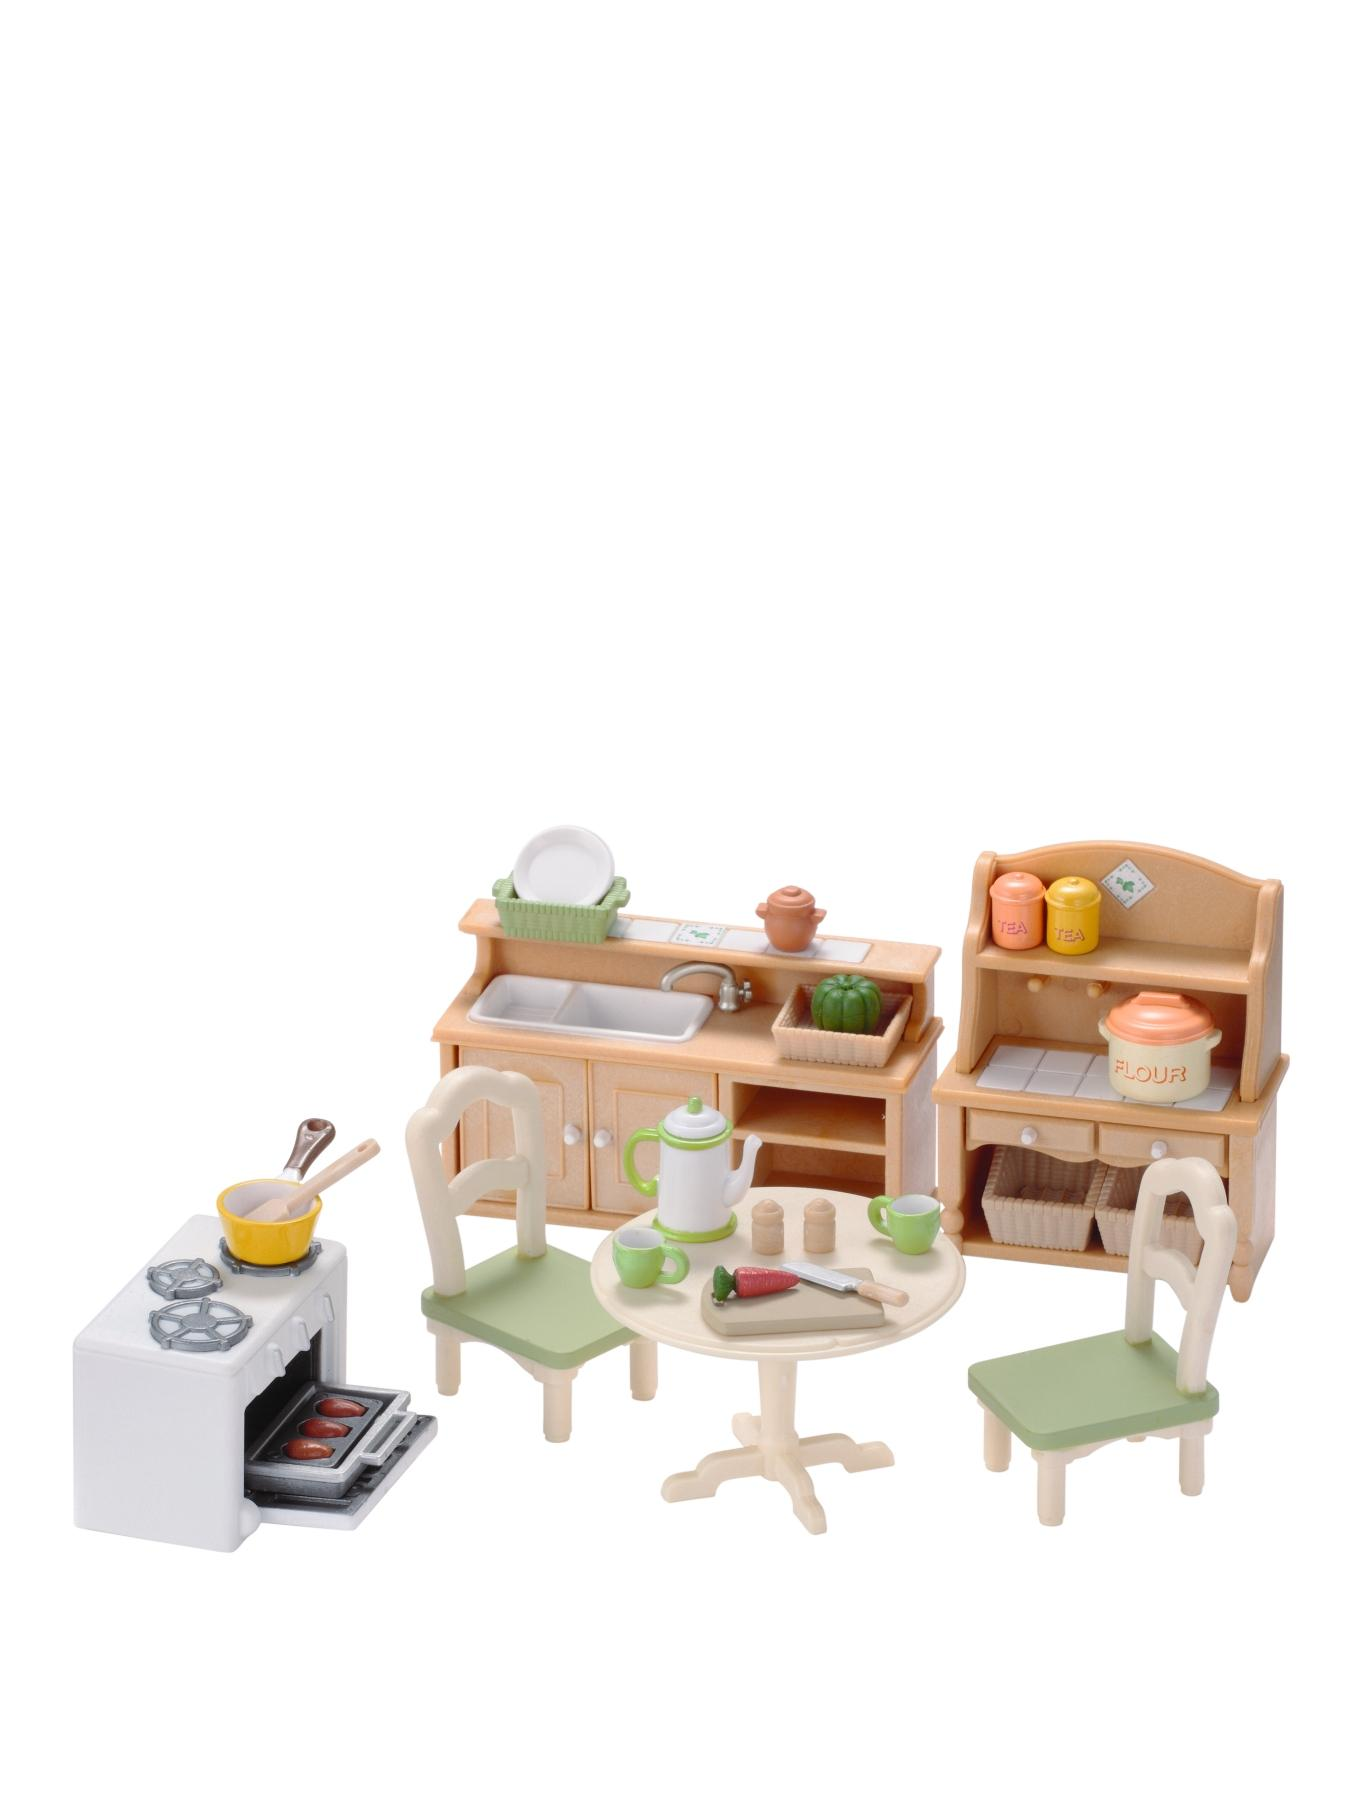 Buy cheap children table chairs compare products prices for Small childrens kitchen set